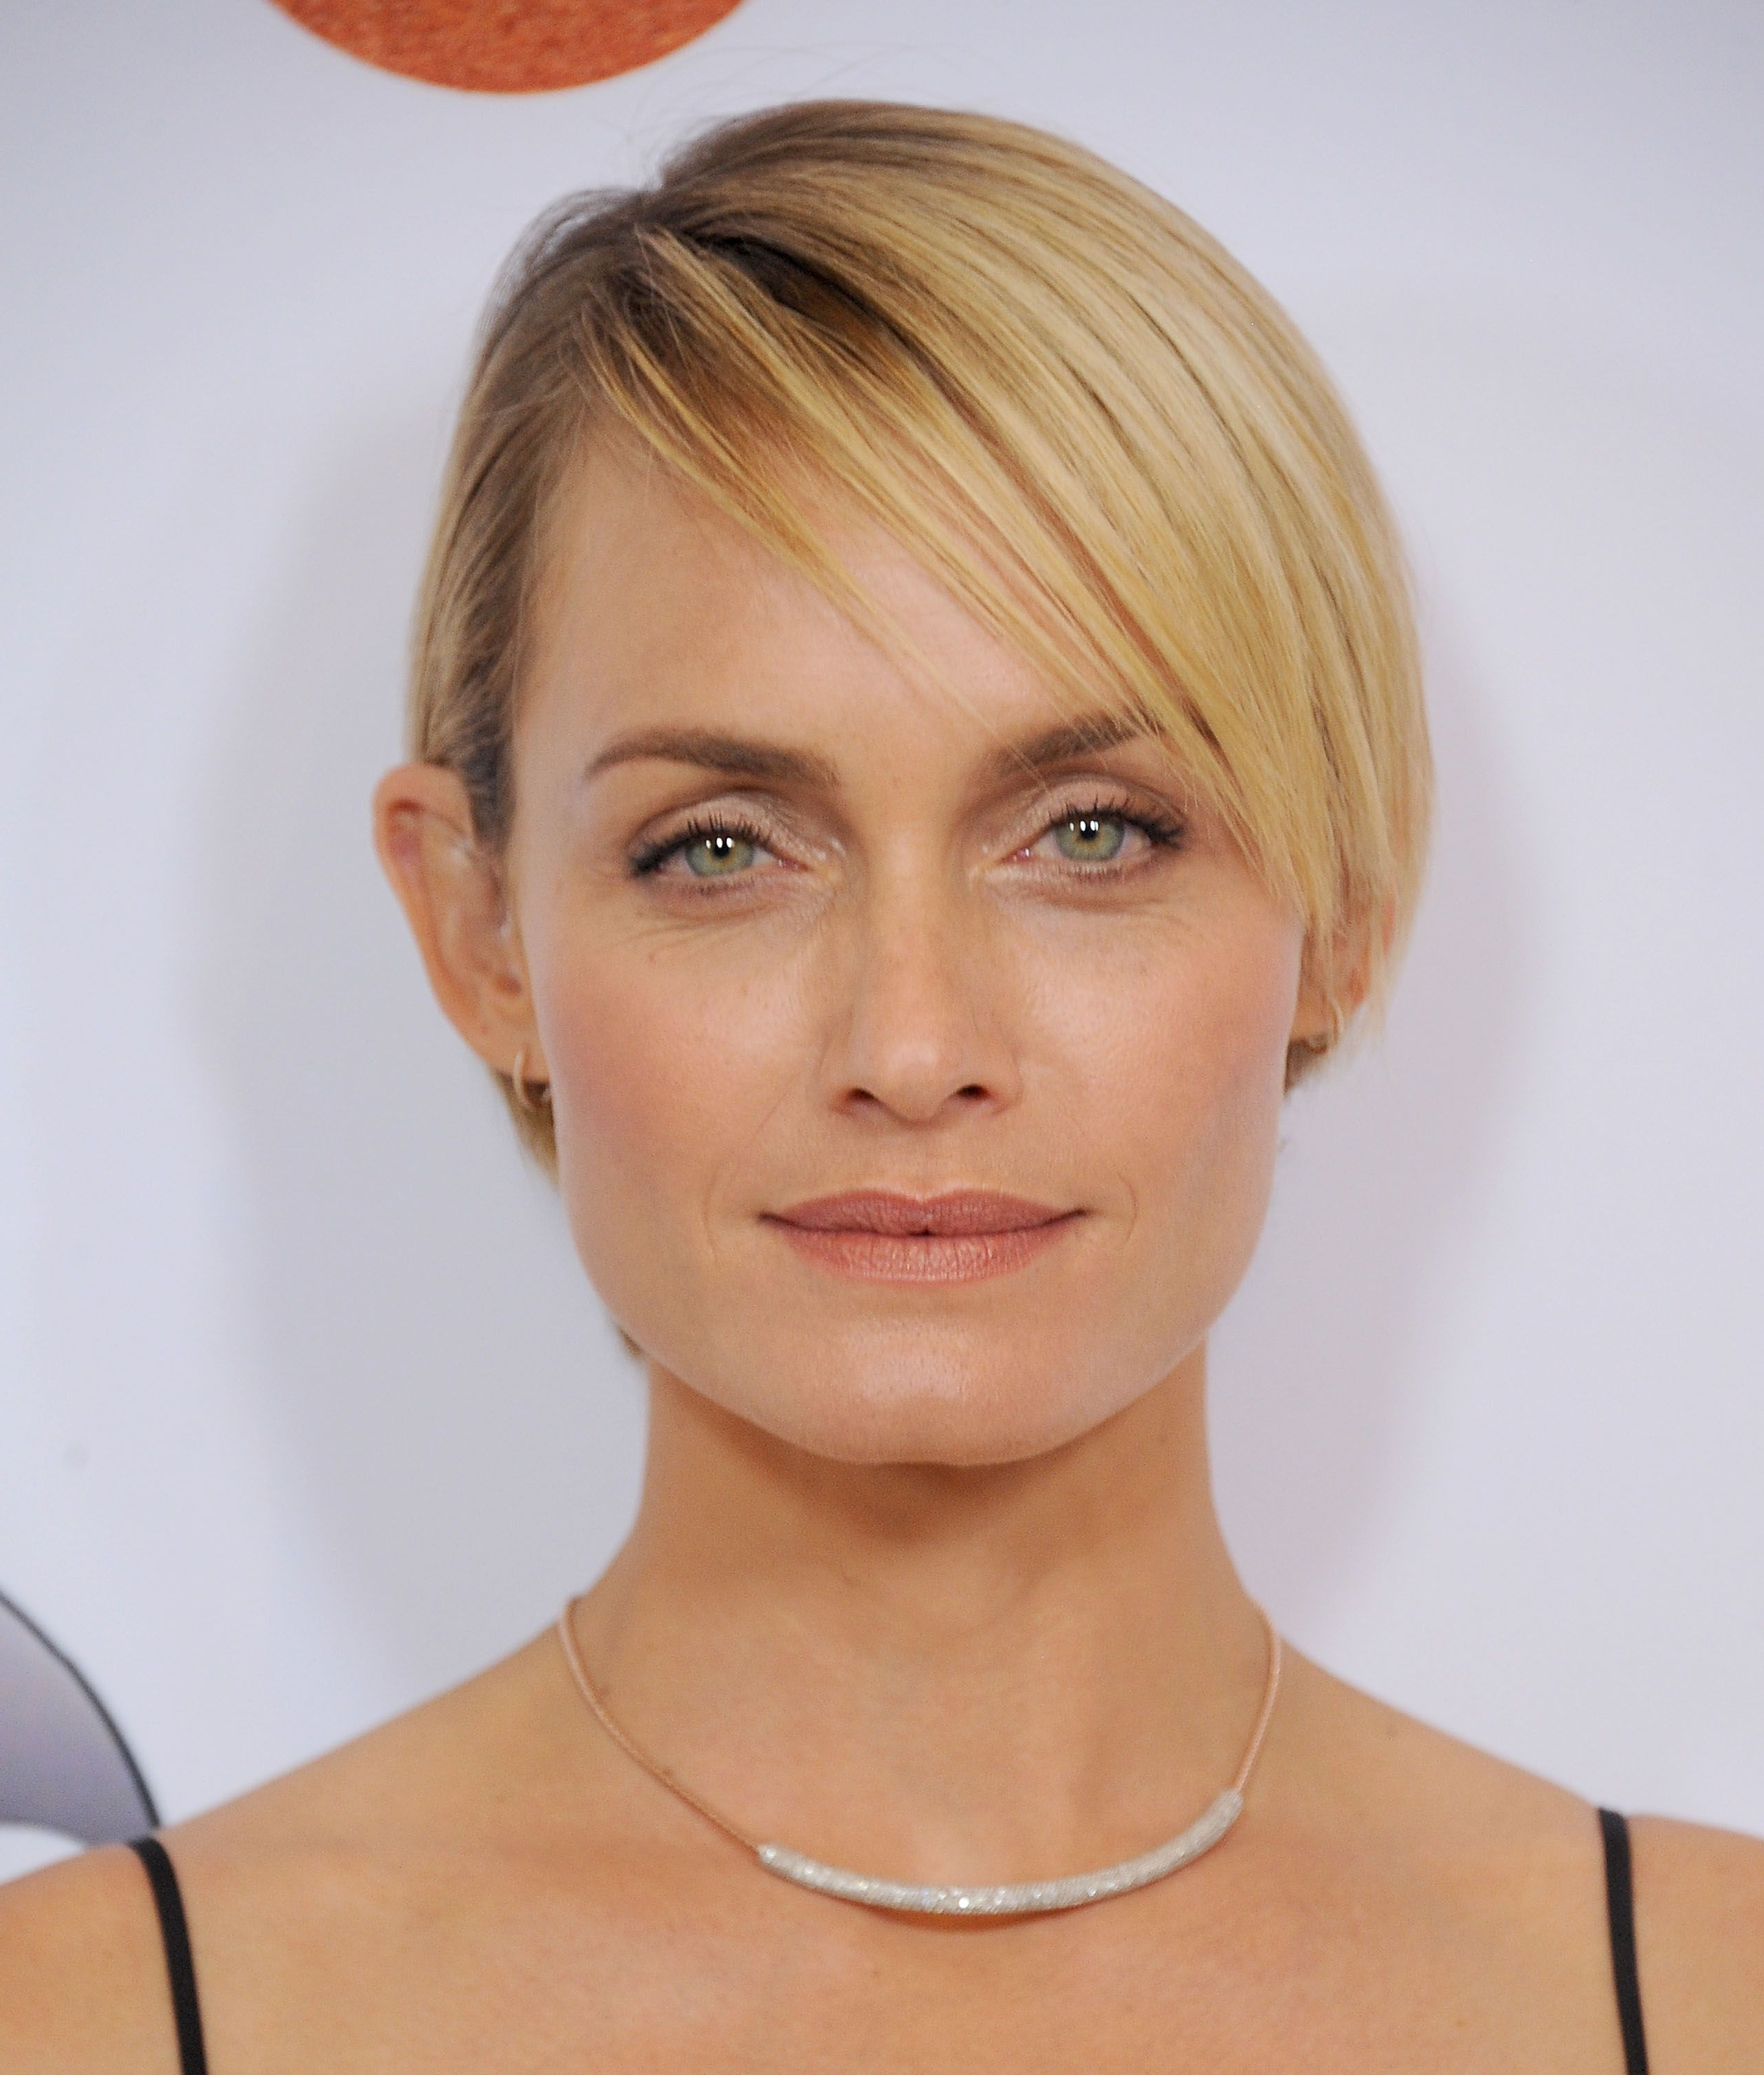 65 Best Short Hairstyles, Haircuts, And Short Hair Ideas For 2018 With Regard To Short Haircuts That Make You Look Younger (Gallery 14 of 25)